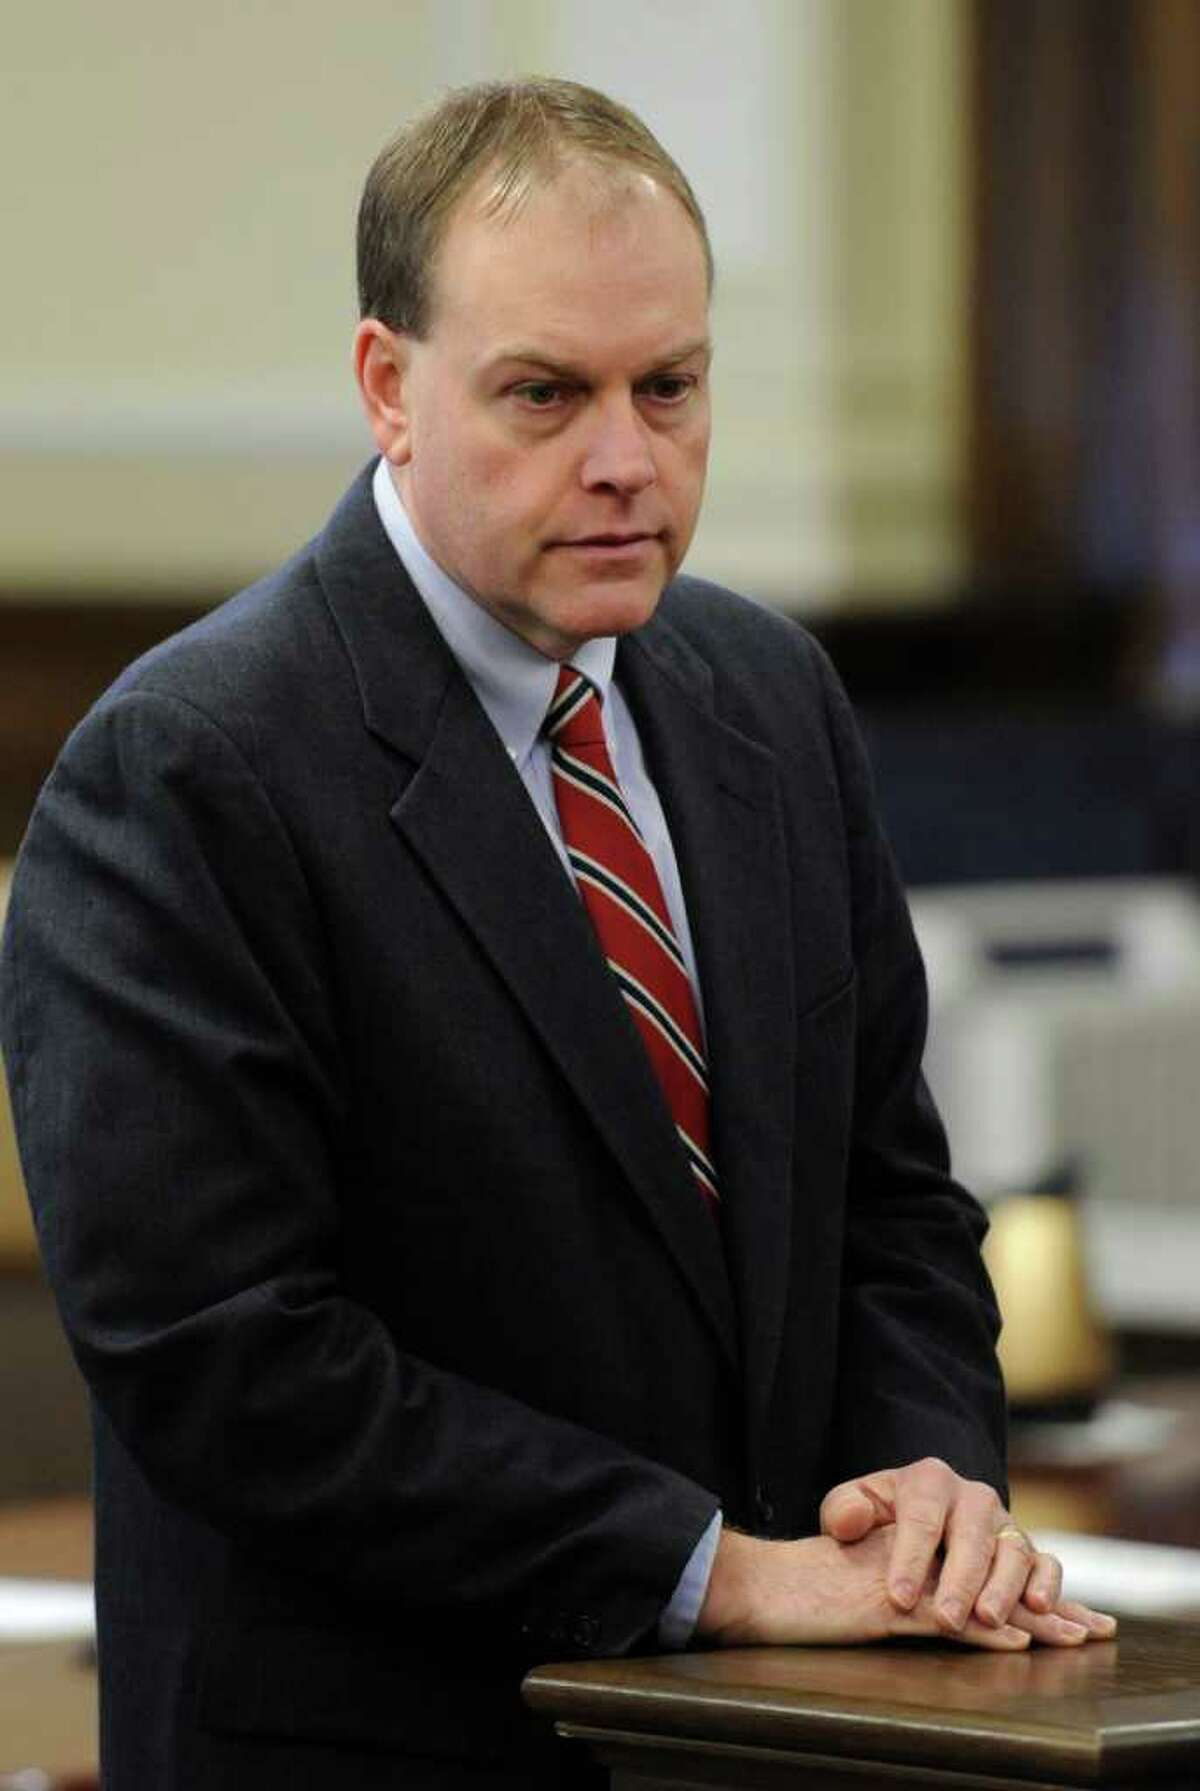 Edward McDonough appears in court before final summations in his ballot fraud case in the Rensselaer County Courthouse in Troy, N.Y. March 2. 2012. (Skip Dickstein / Times Union)